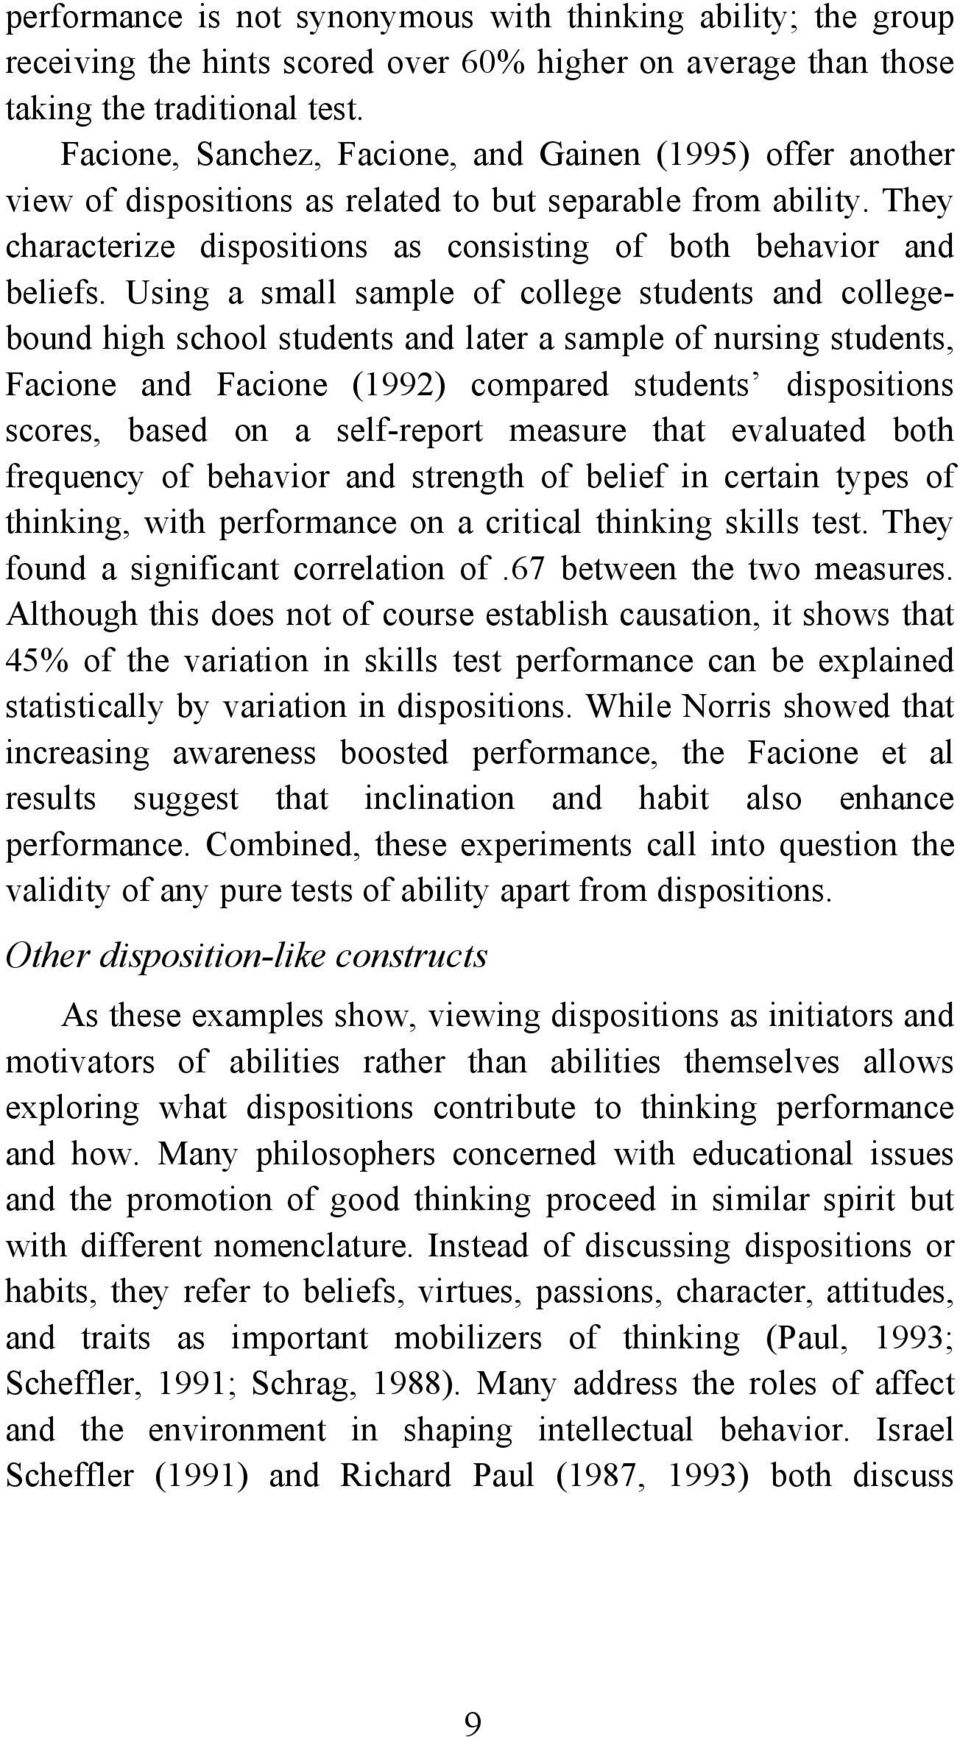 Using a small sample of college students and collegebound high school students and later a sample of nursing students, Facione and Facione (1992) compared students dispositions scores, based on a